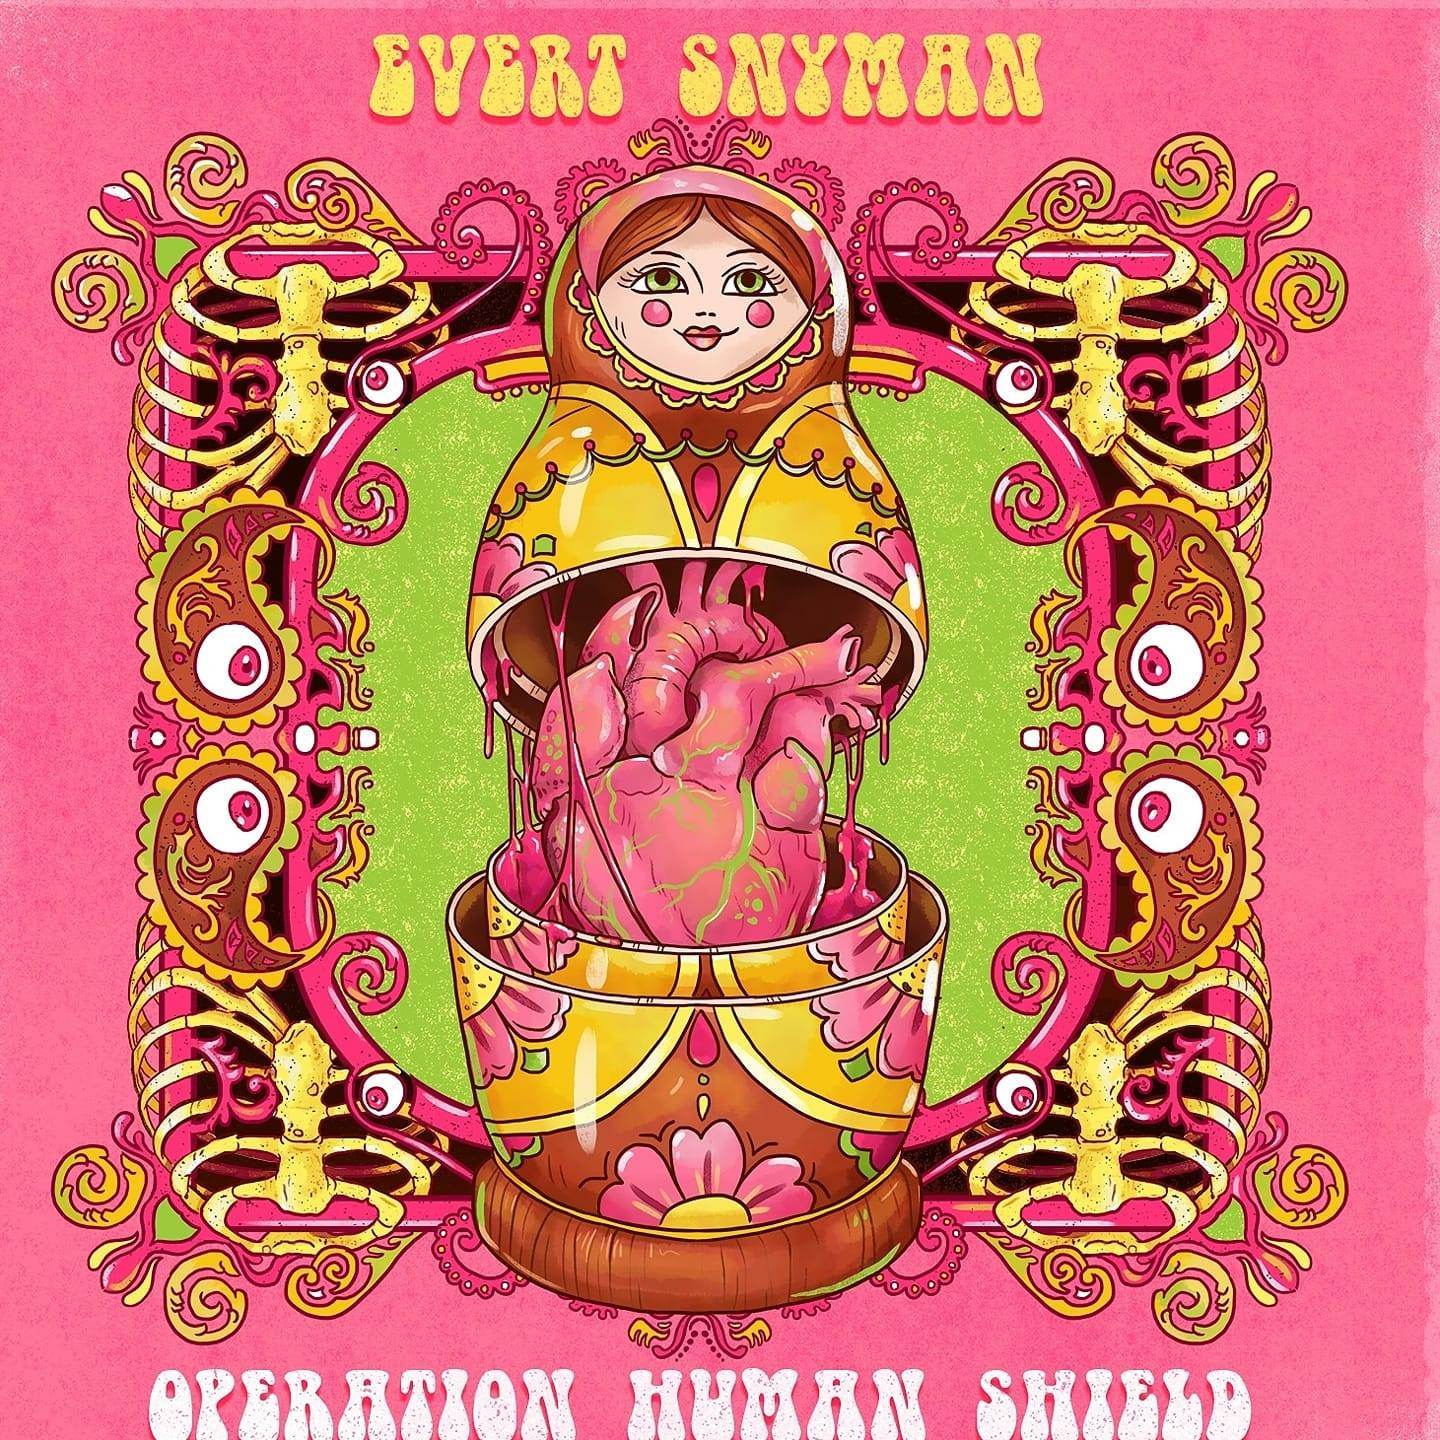 Evert Snyman operation human shield cover